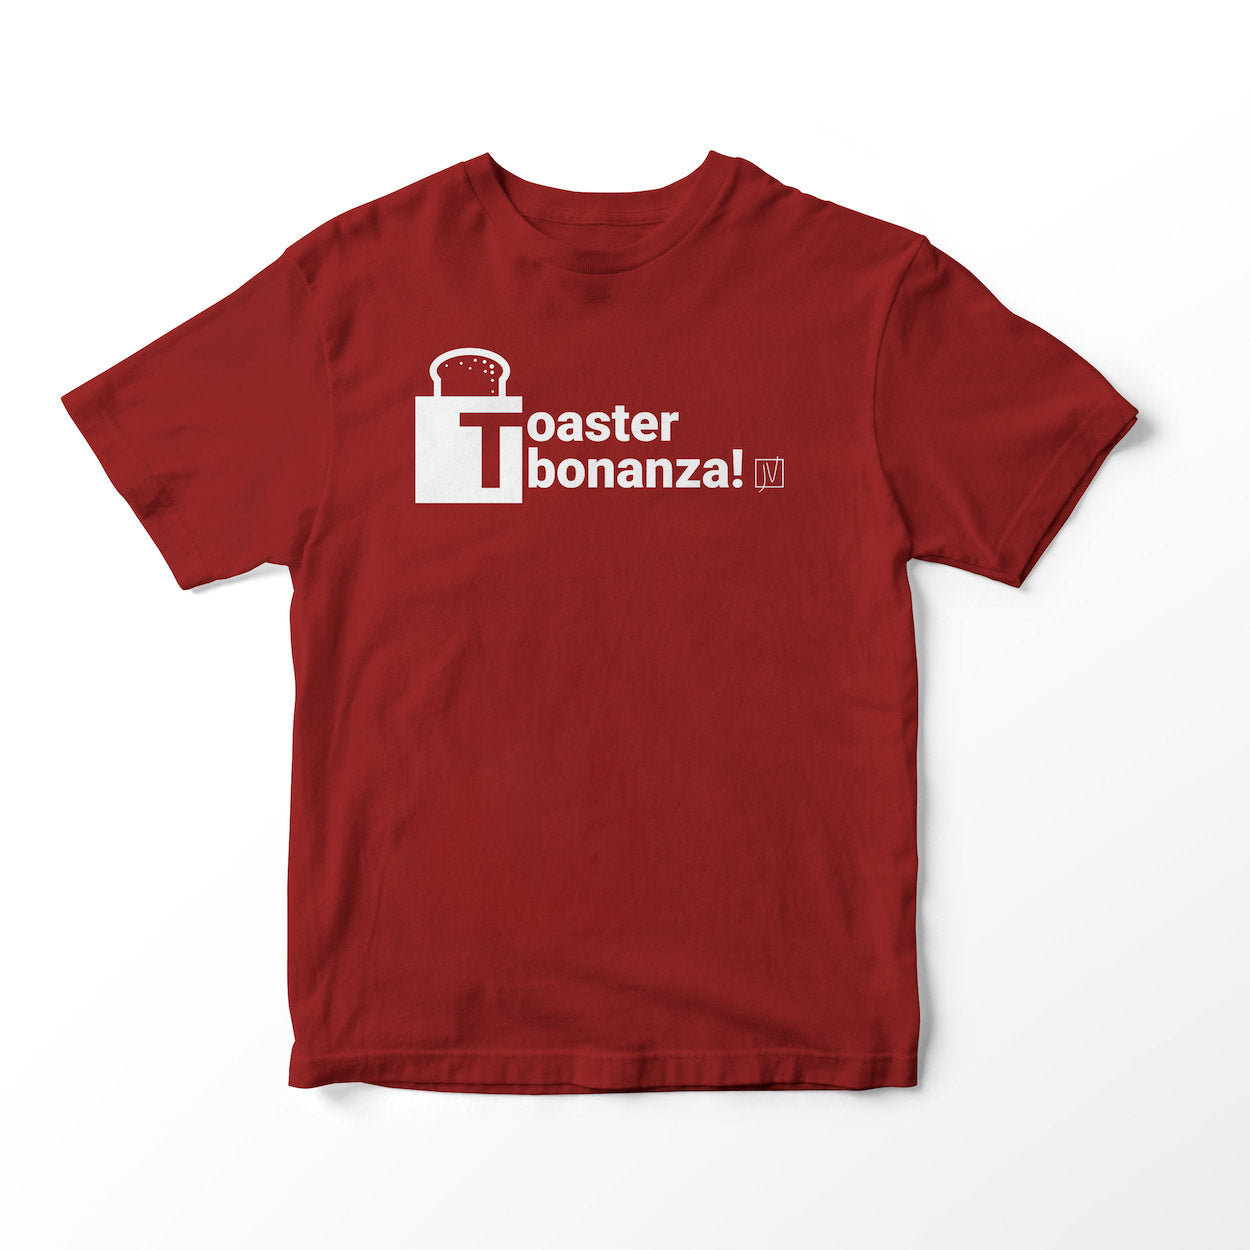 Toaster Bonanza Red T-Shirt